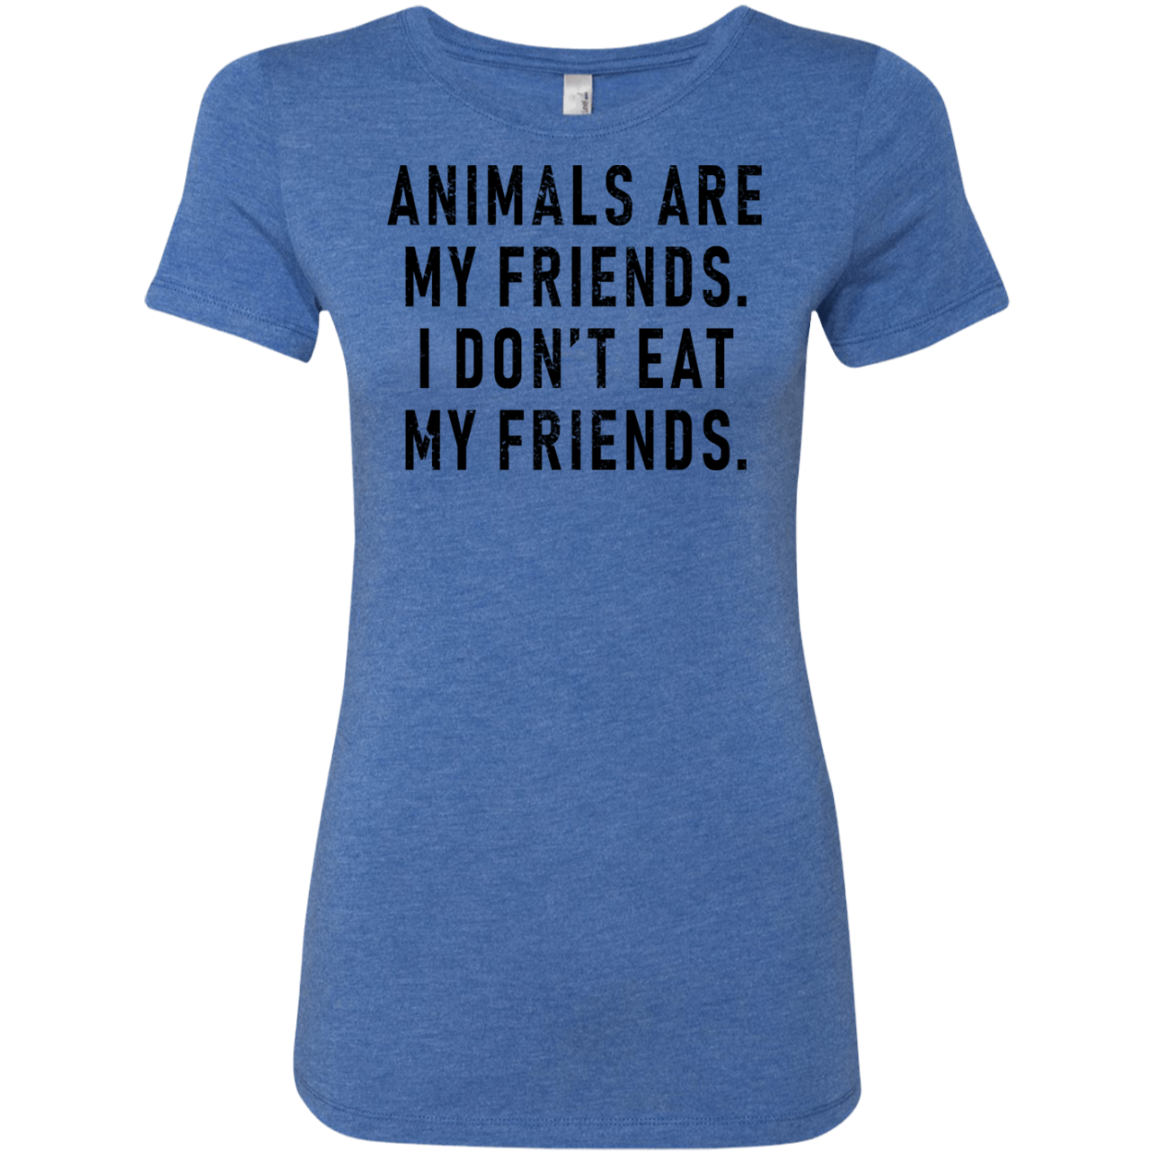 Animals Are My Friends Don't Eat My Friends Women's Classic Tee